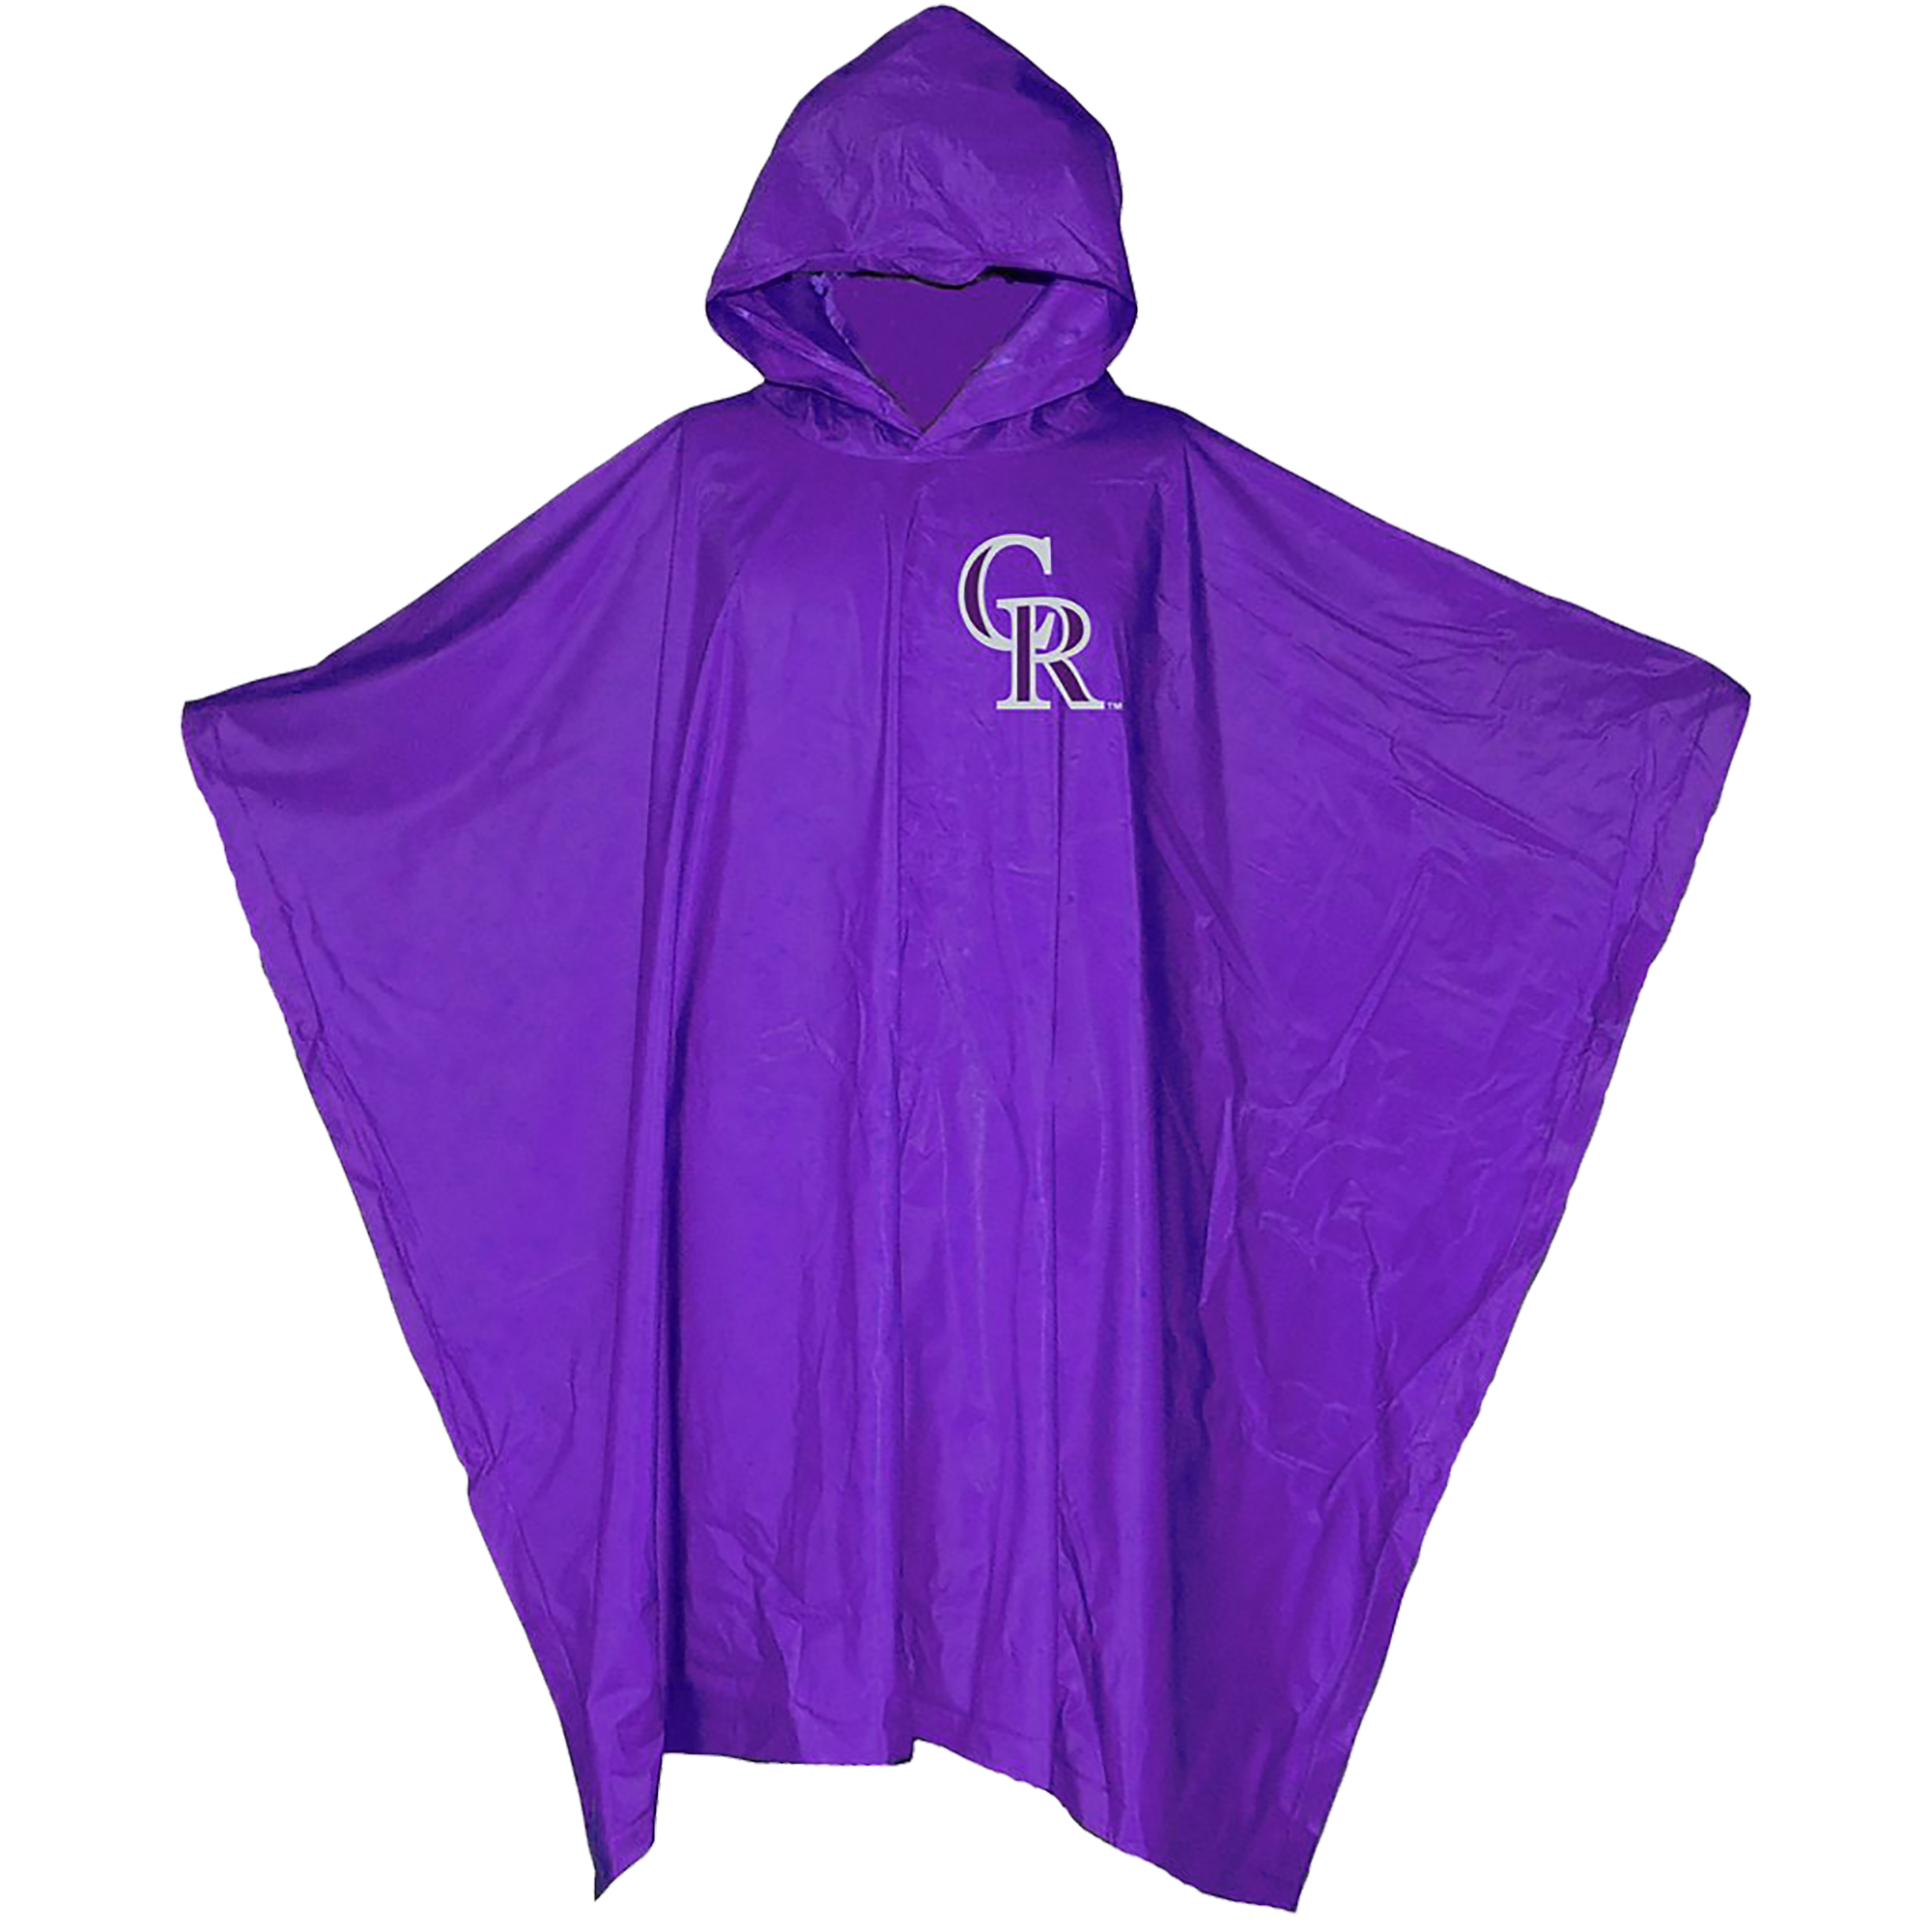 Colorado Rockies Stadium Poncho No Size by Storm Duds